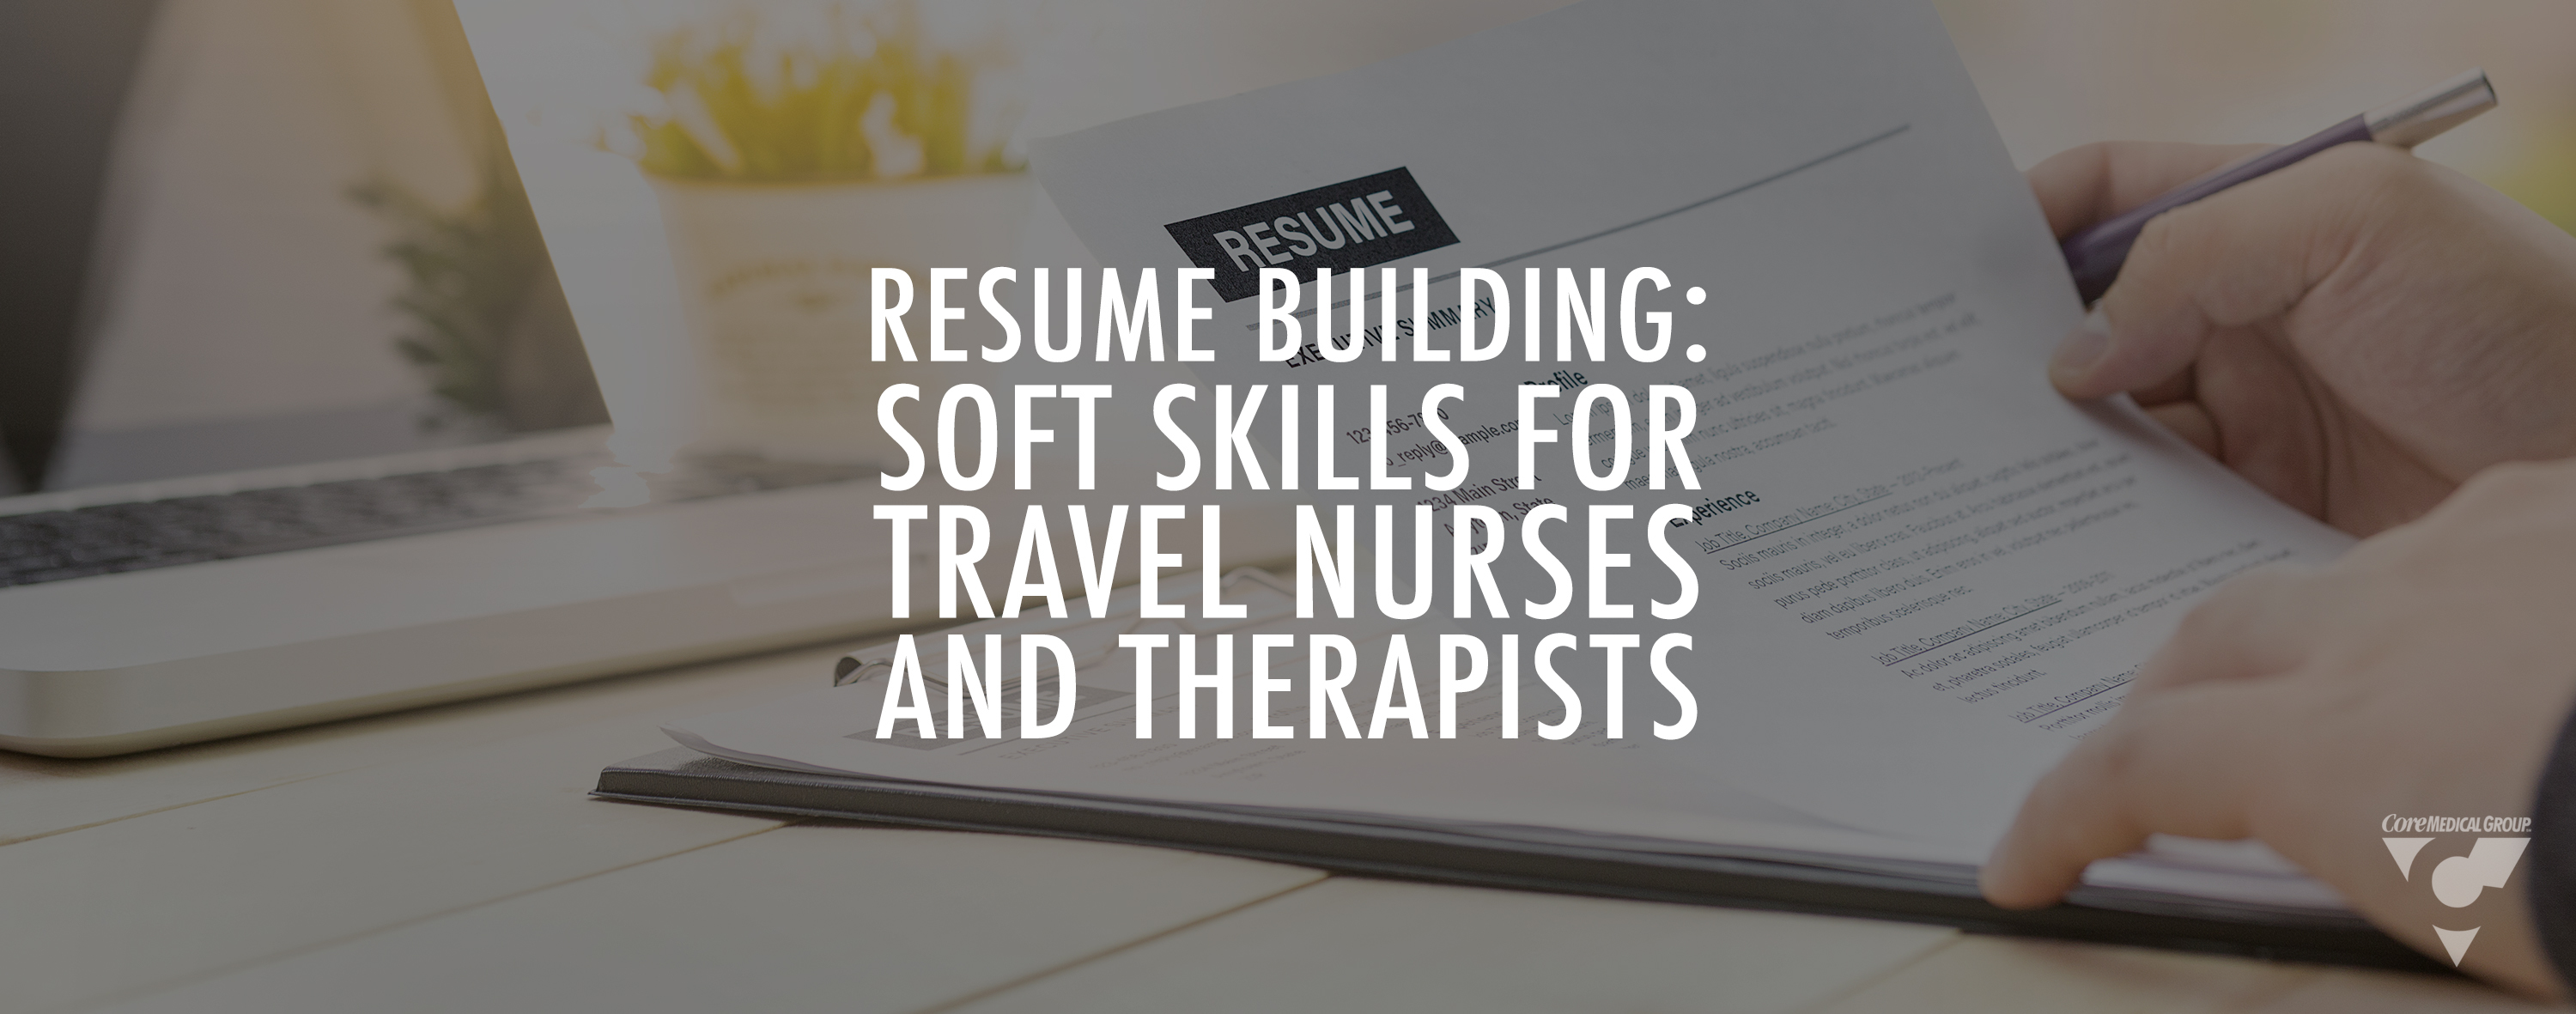 Resume Building: Soft Skills for Travel Nurses and Therapists